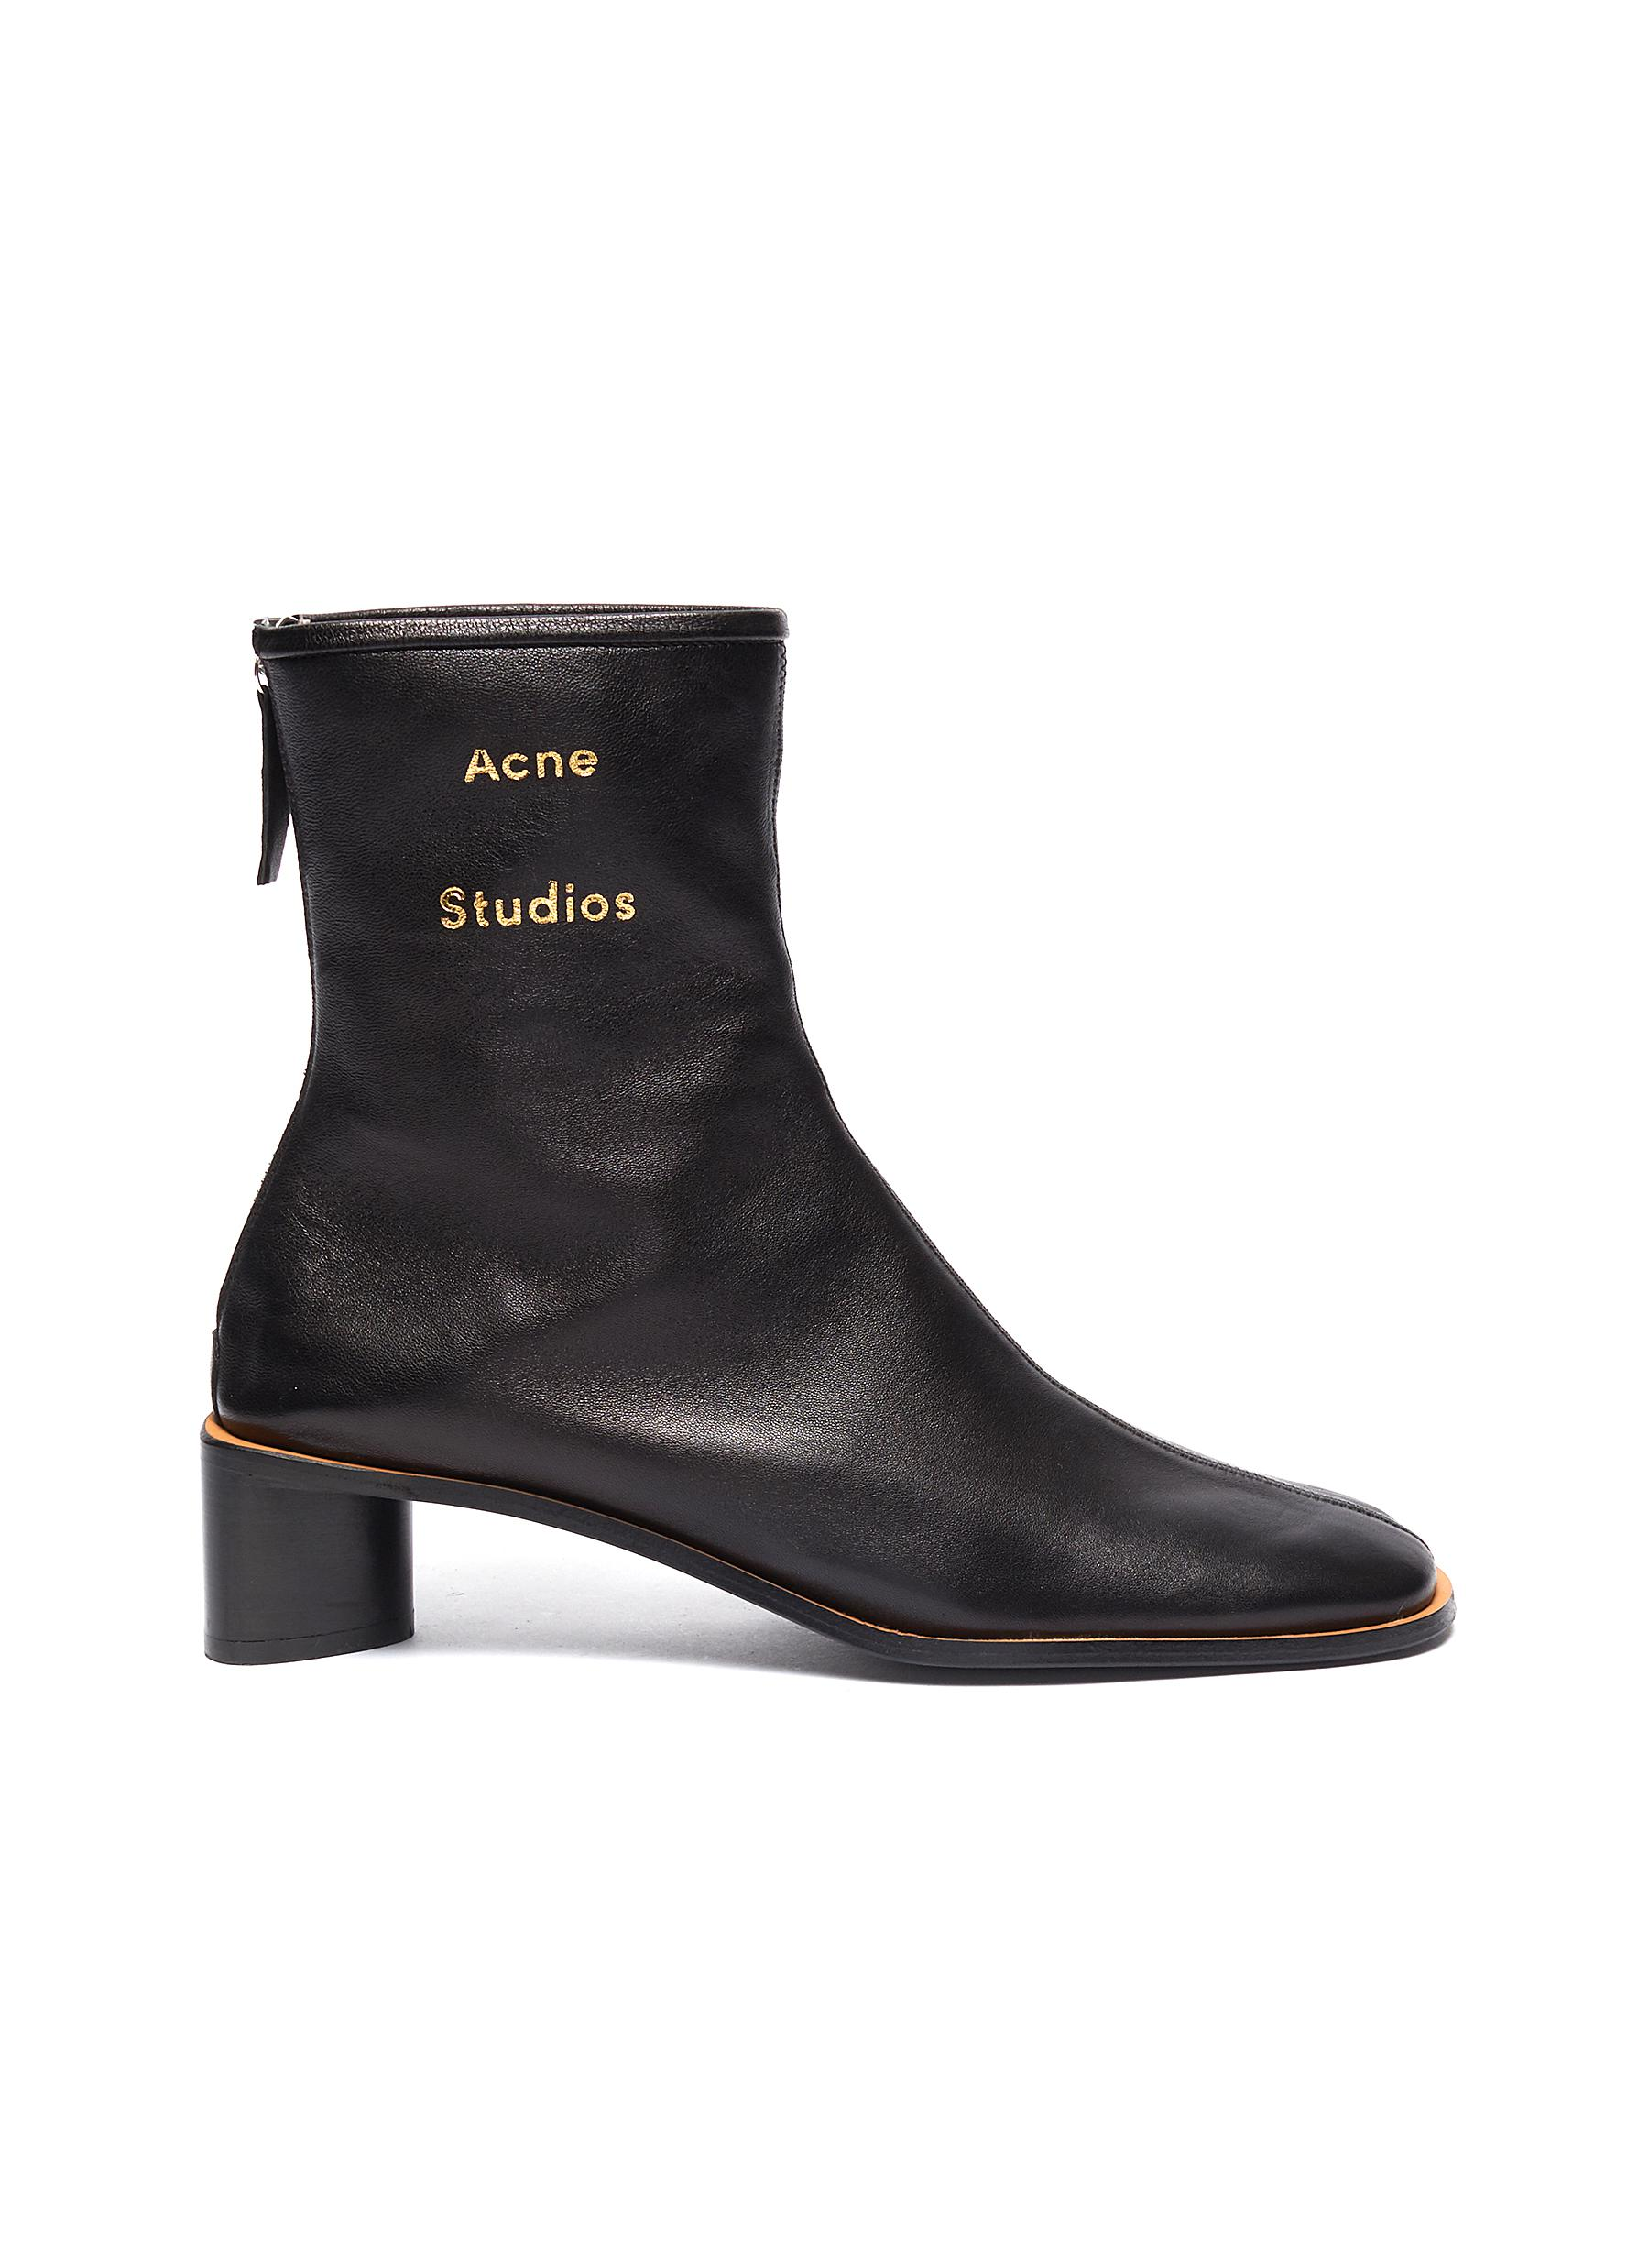 Triangular heel leather ankle boots by Acne Studios